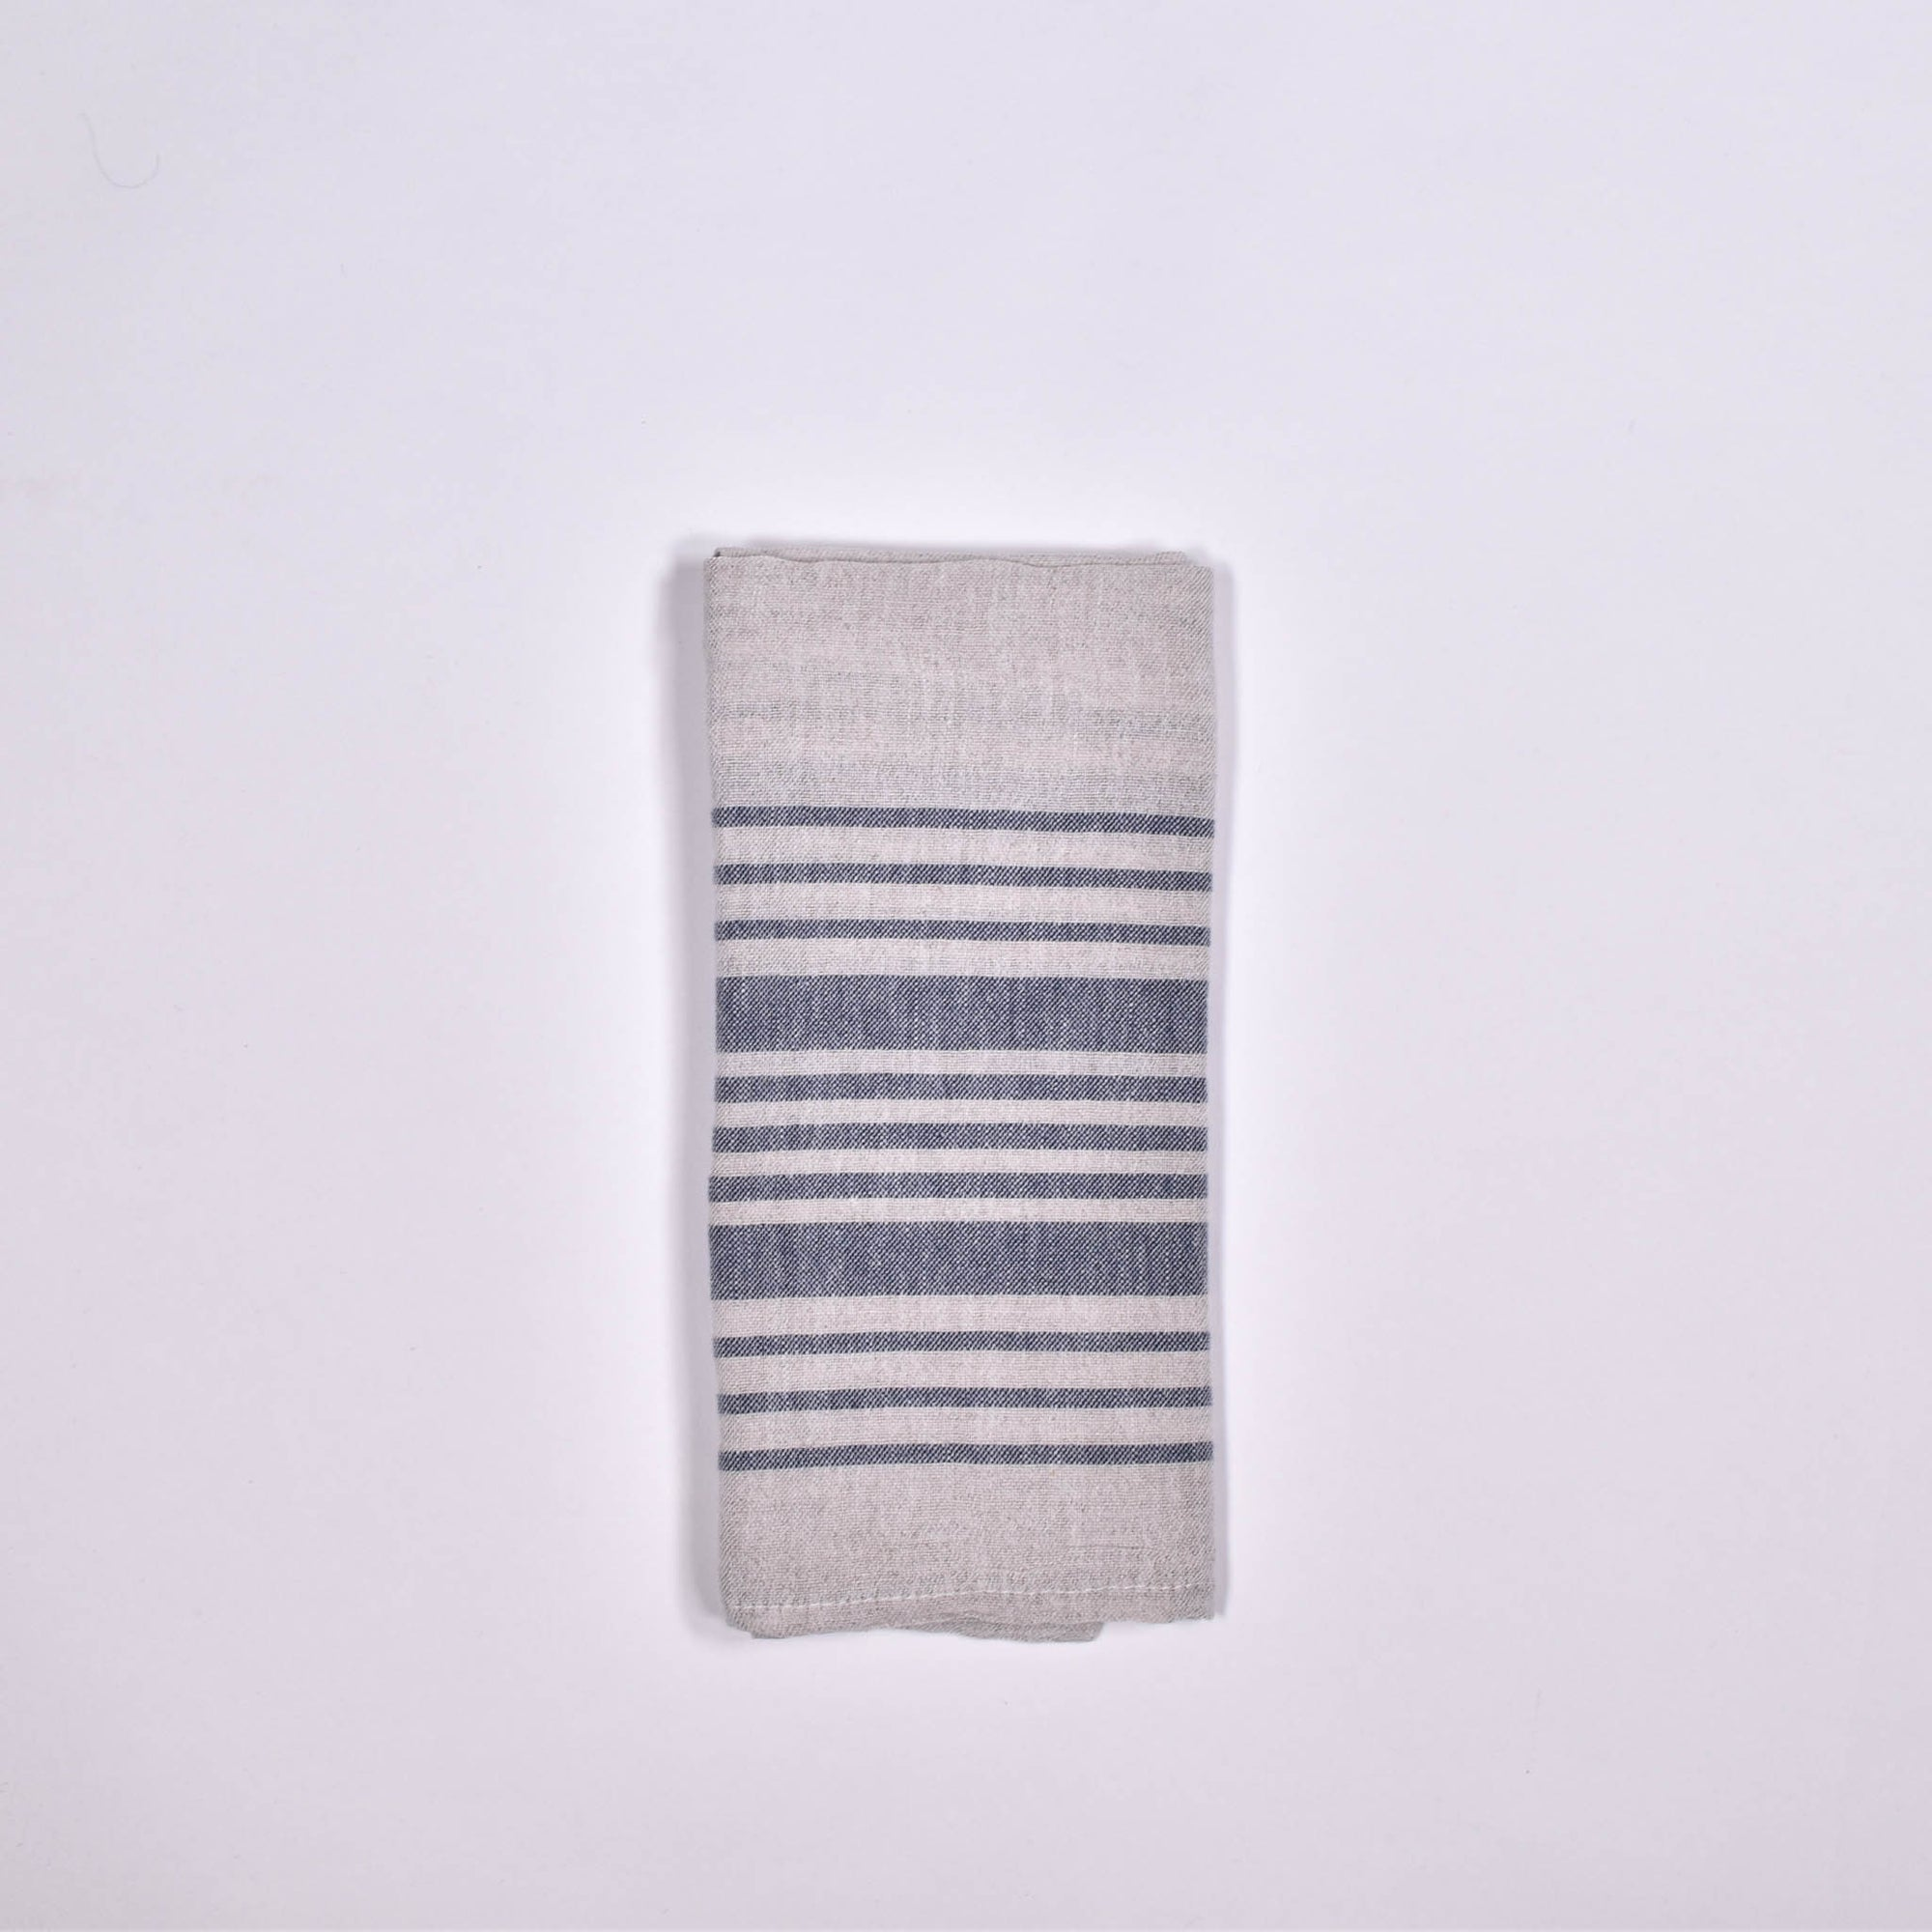 Epicure Kitchen Towel - Rug & Weave